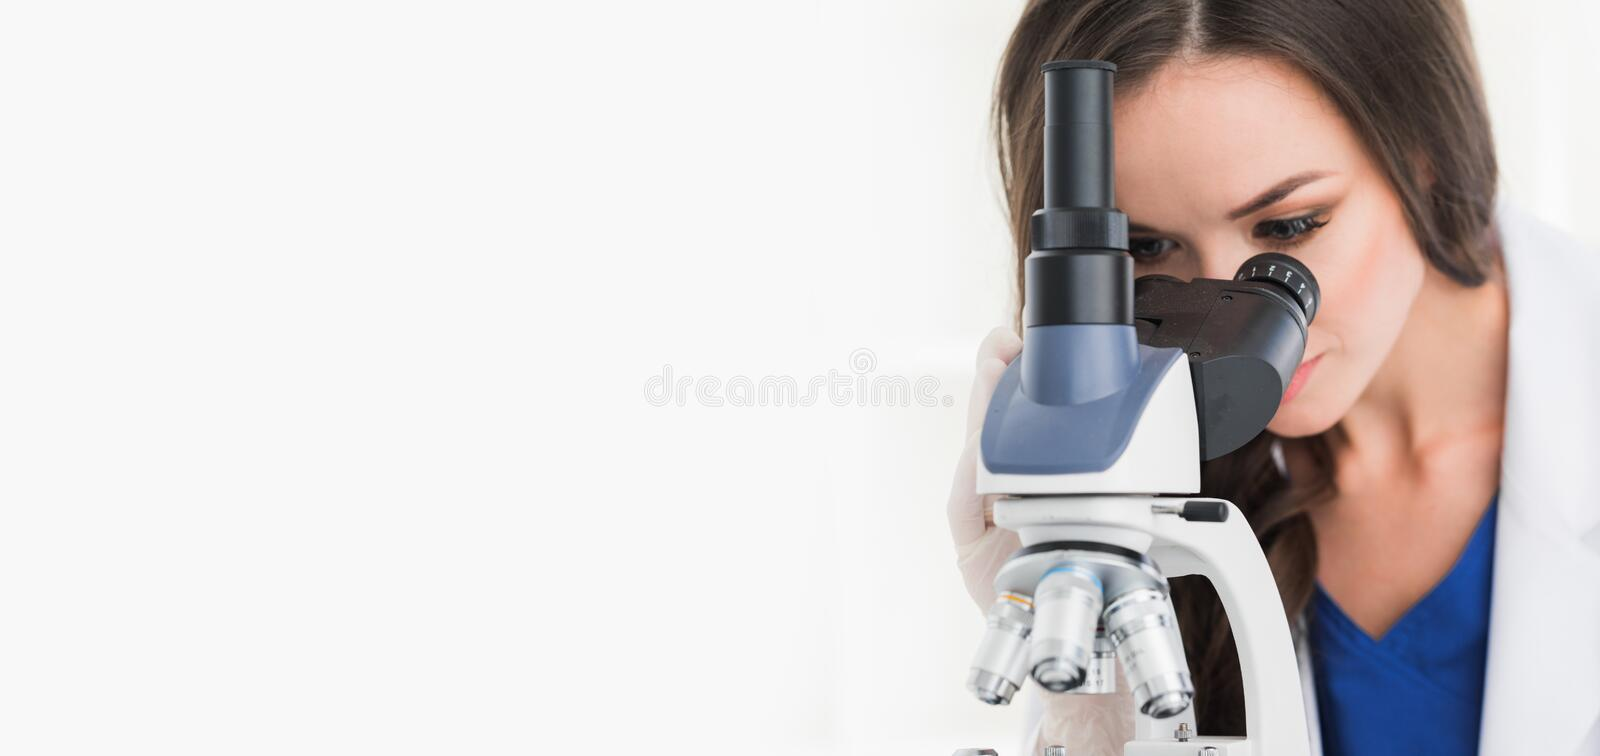 Female scientist with microscope royalty free stock image